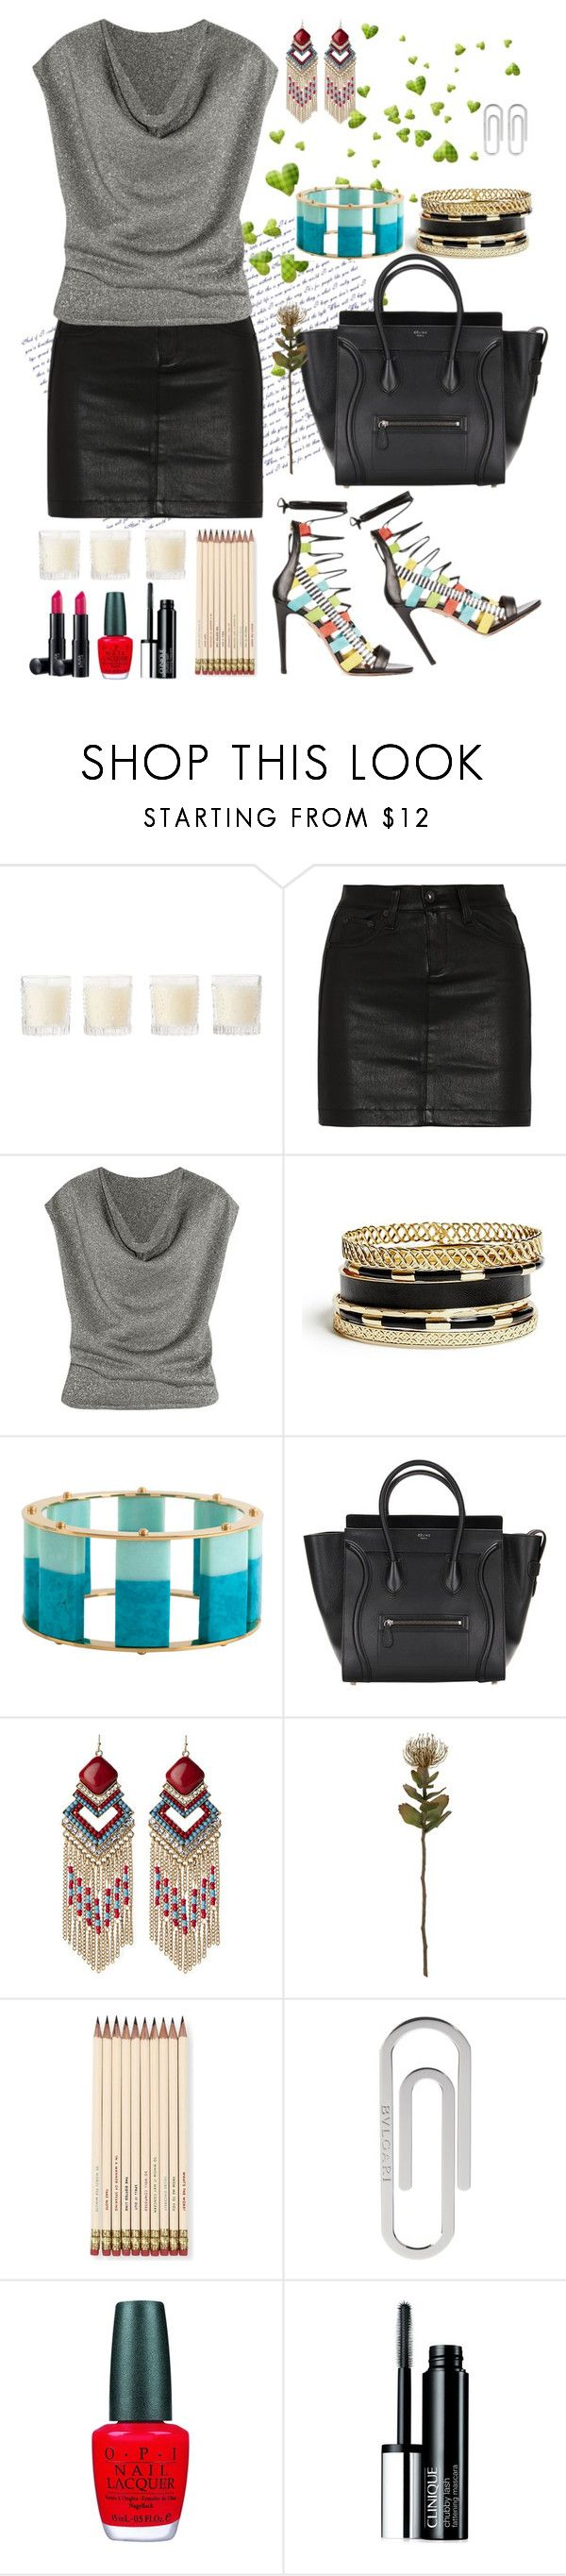 """""""Office"""" by mary-domenech on Polyvore featuring moda, Shabby Chic, rag & bone/JEAN, Yves Saint Laurent, GUESS, Lele Sadoughi, Laura Geller, Natasha, Crate and Barrel y Kate Spade"""